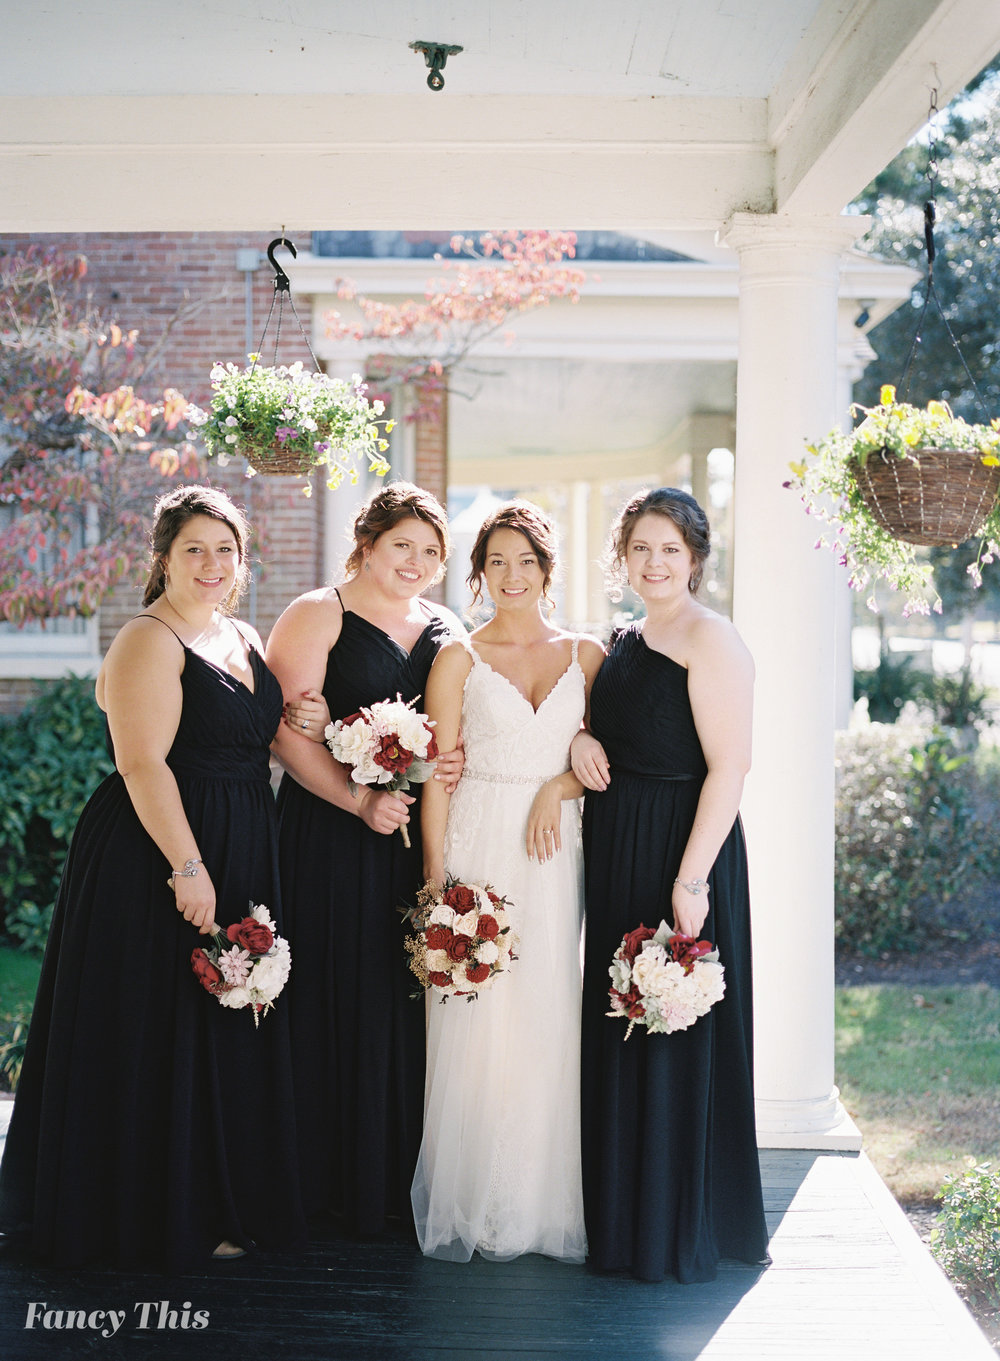 edentonwedding_linksatmulberryhillweddingphotography_fancythis-54.jpg